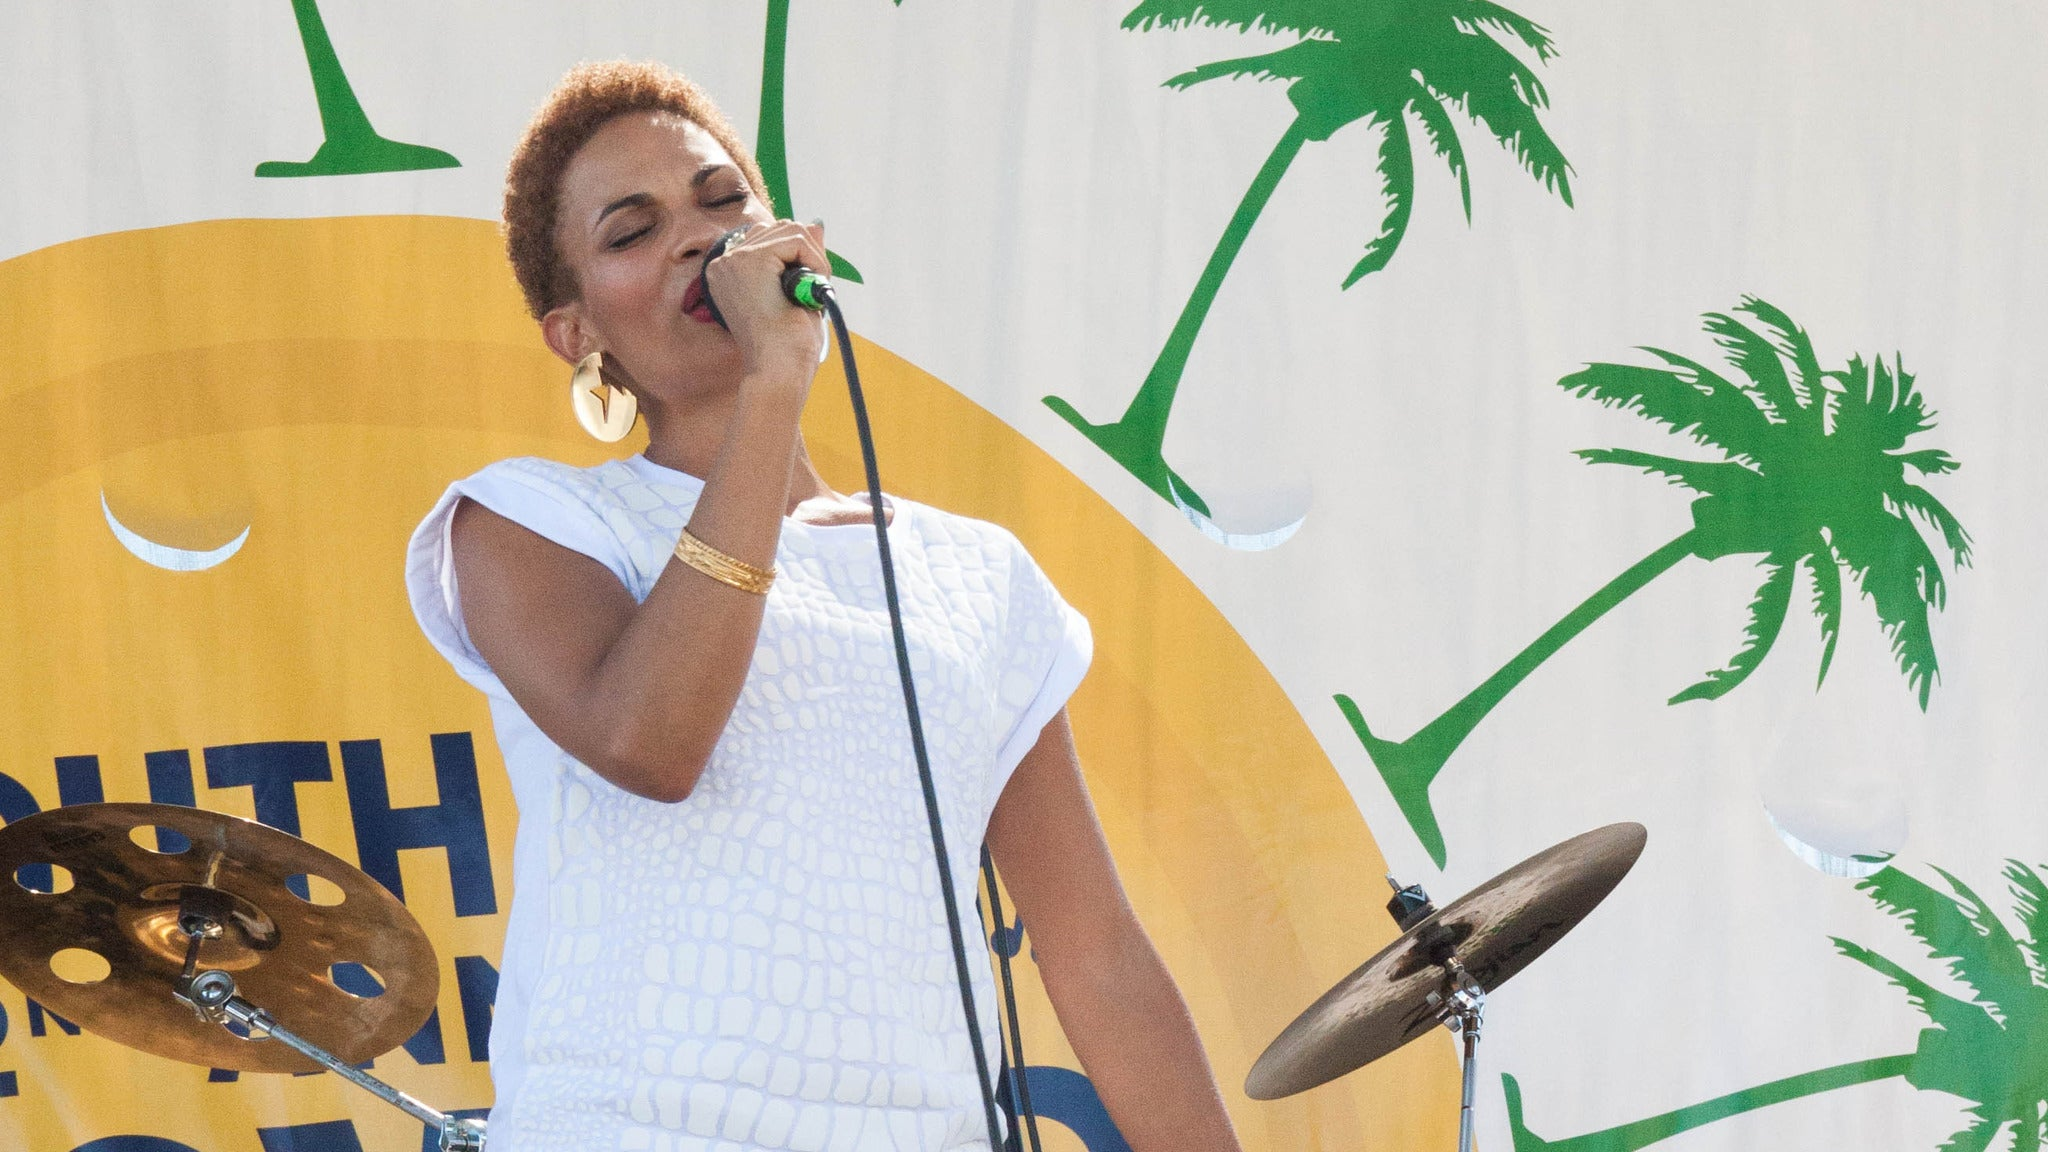 Goapele at Ace Hotel Los Angeles - Los Angeles, CA 90015